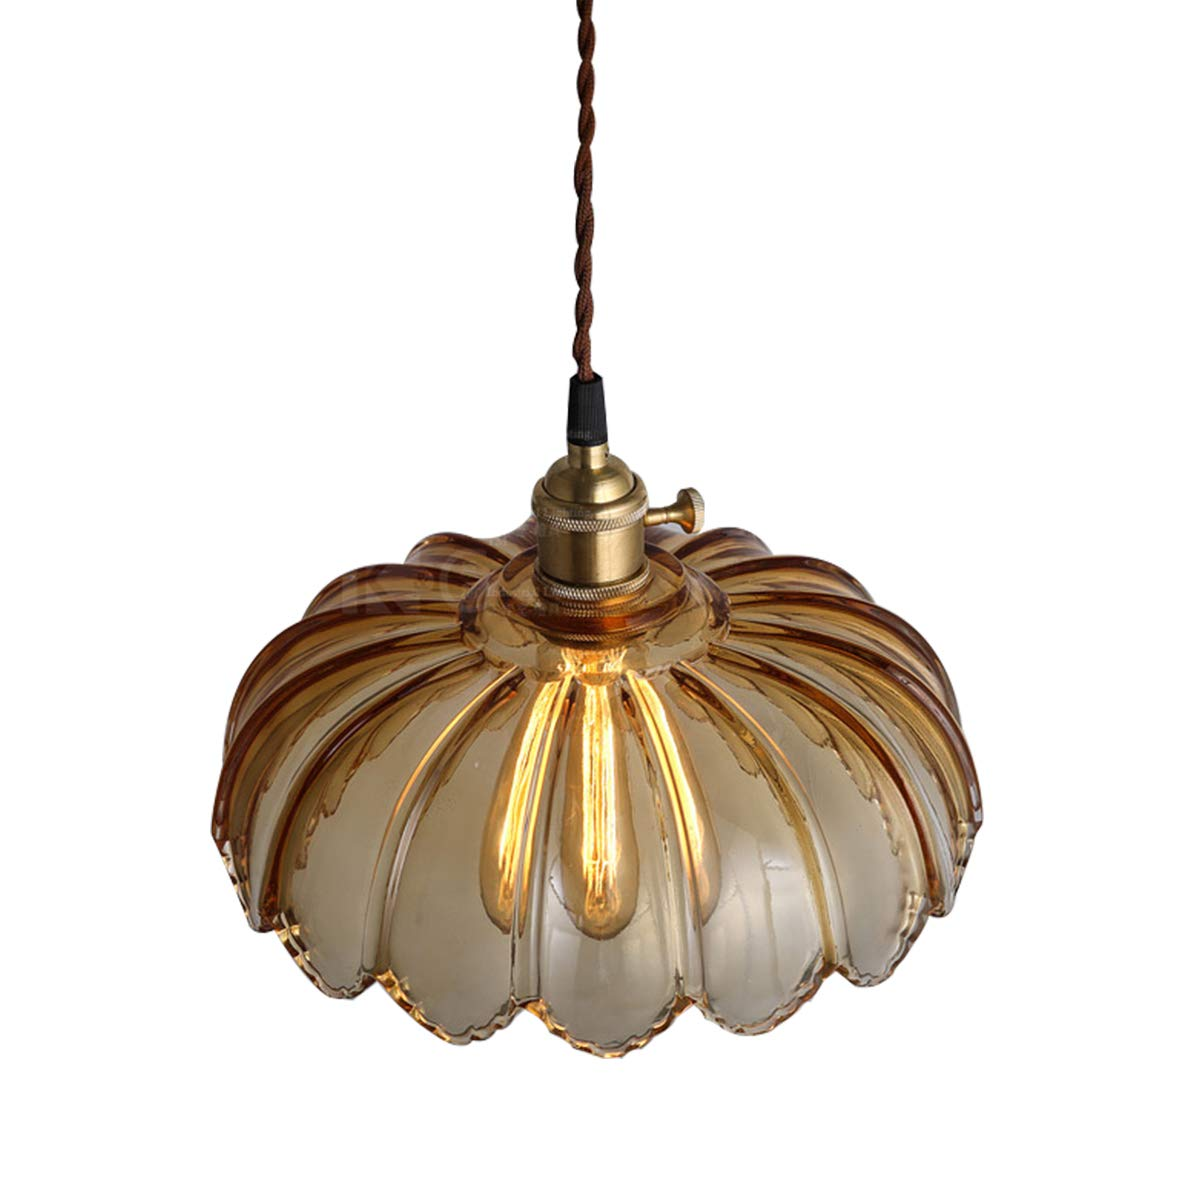 Industrial Chandelier Pumpkin Lights Pendant Light Clear Glass Kitchen Hanging Lamp Vintage Bronze Socket Farmhouse Decor (Amber)